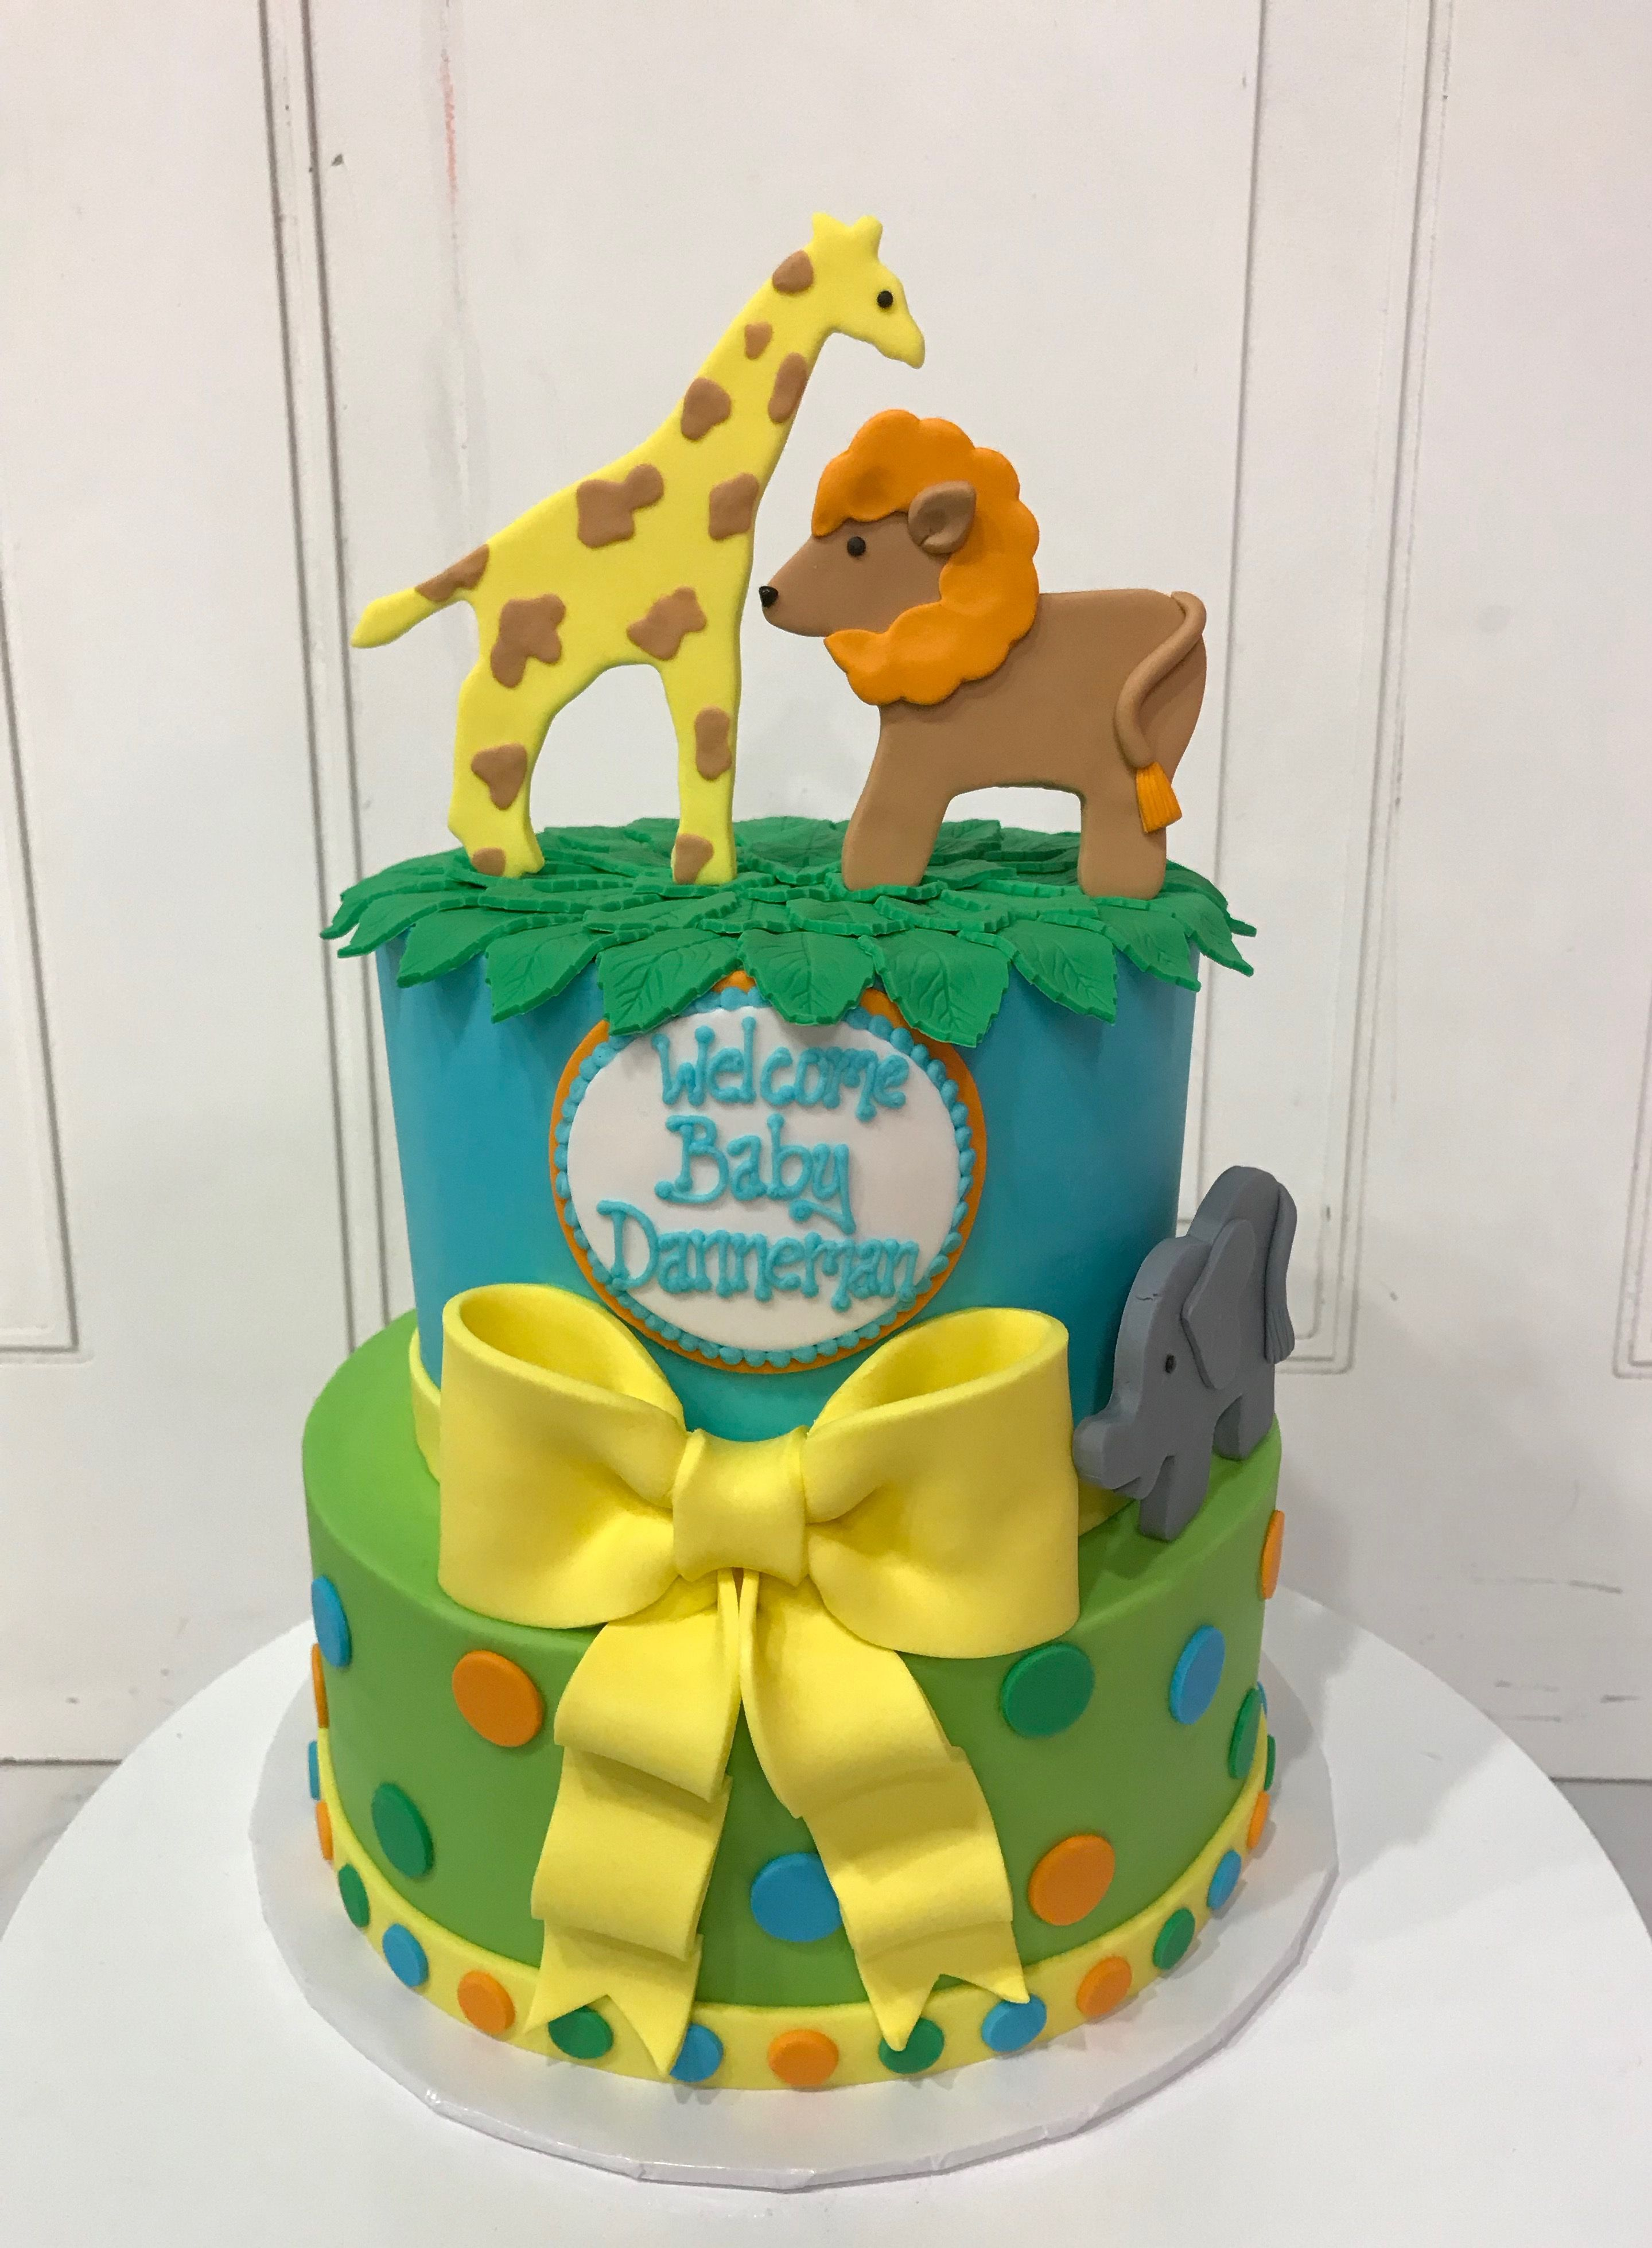 Baby Showers Baby Shower Cakes By 3 Sweet Girls Cakery Pinterest